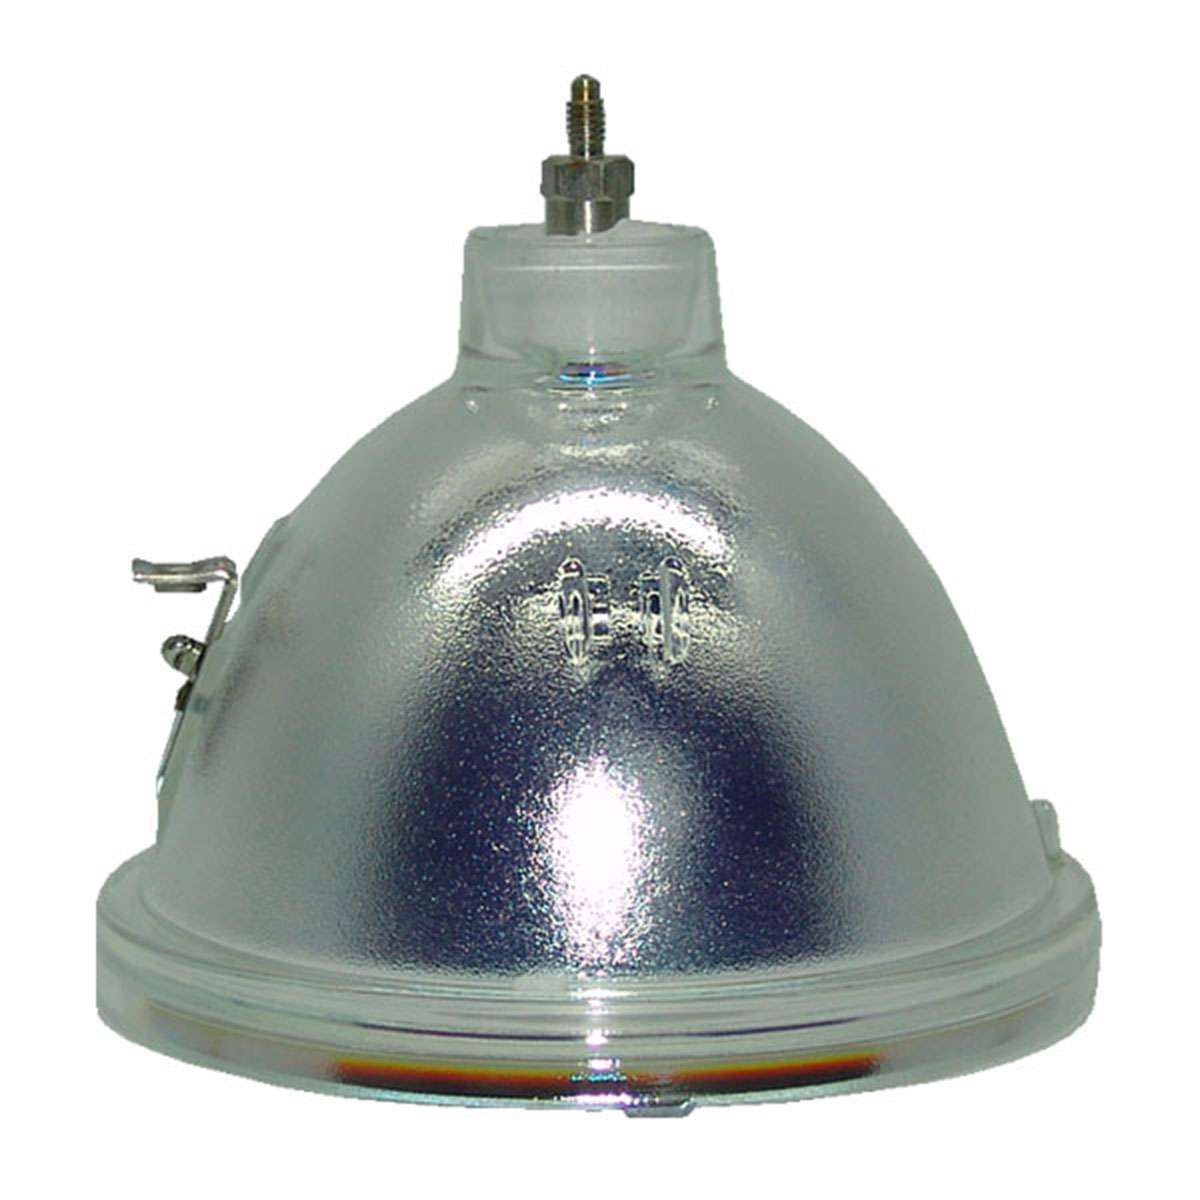 Lutema Platinum for Philips 9280 662 05391 Projector Lamp (Original Philips Bulb) - image 4 of 5